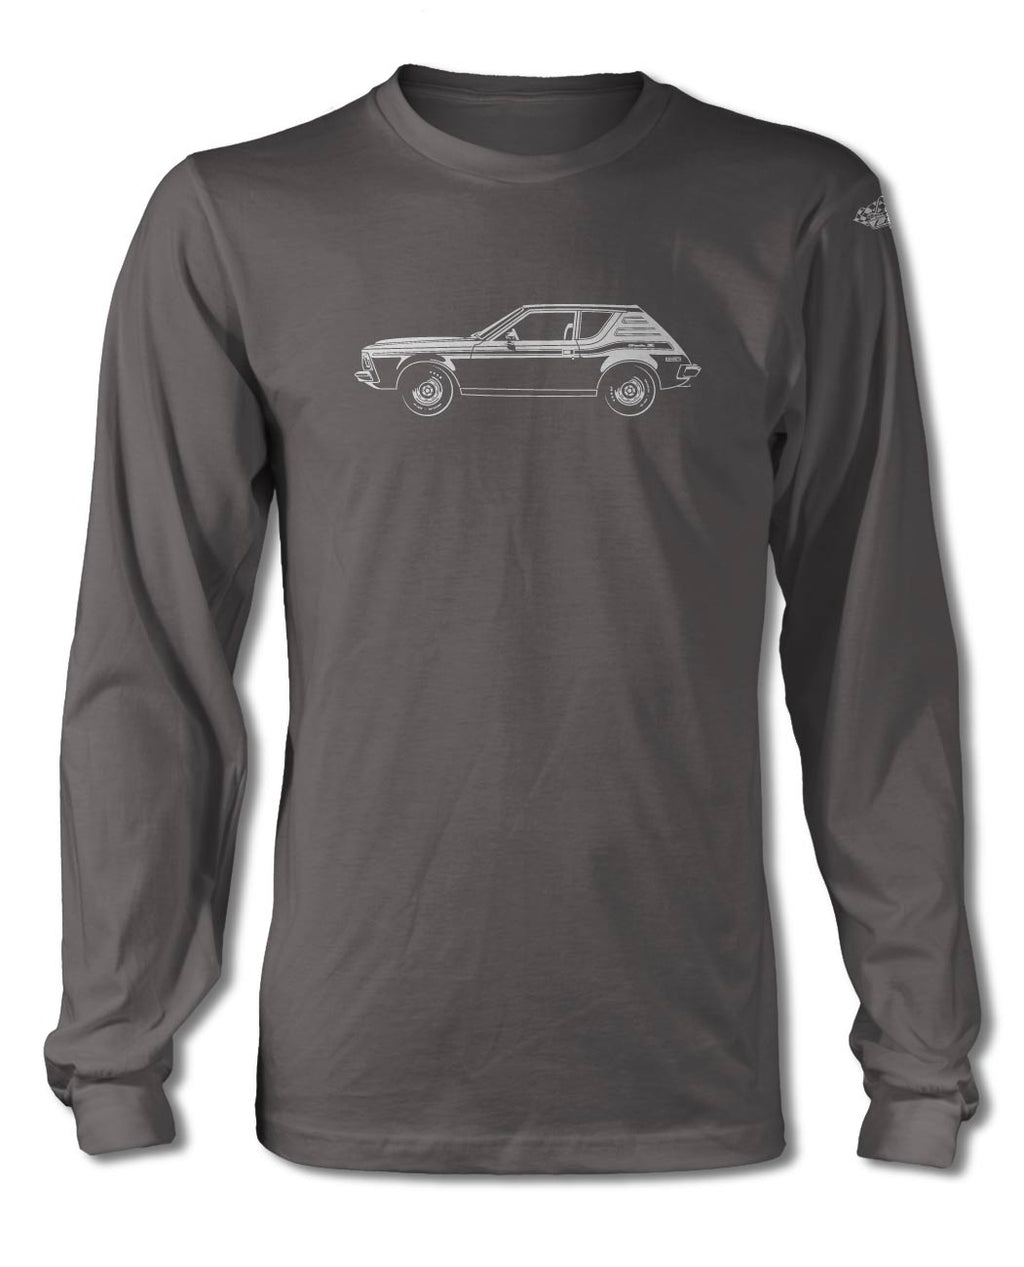 1973 AMC Gremlin X T-Shirt - Long Sleeves - Side View